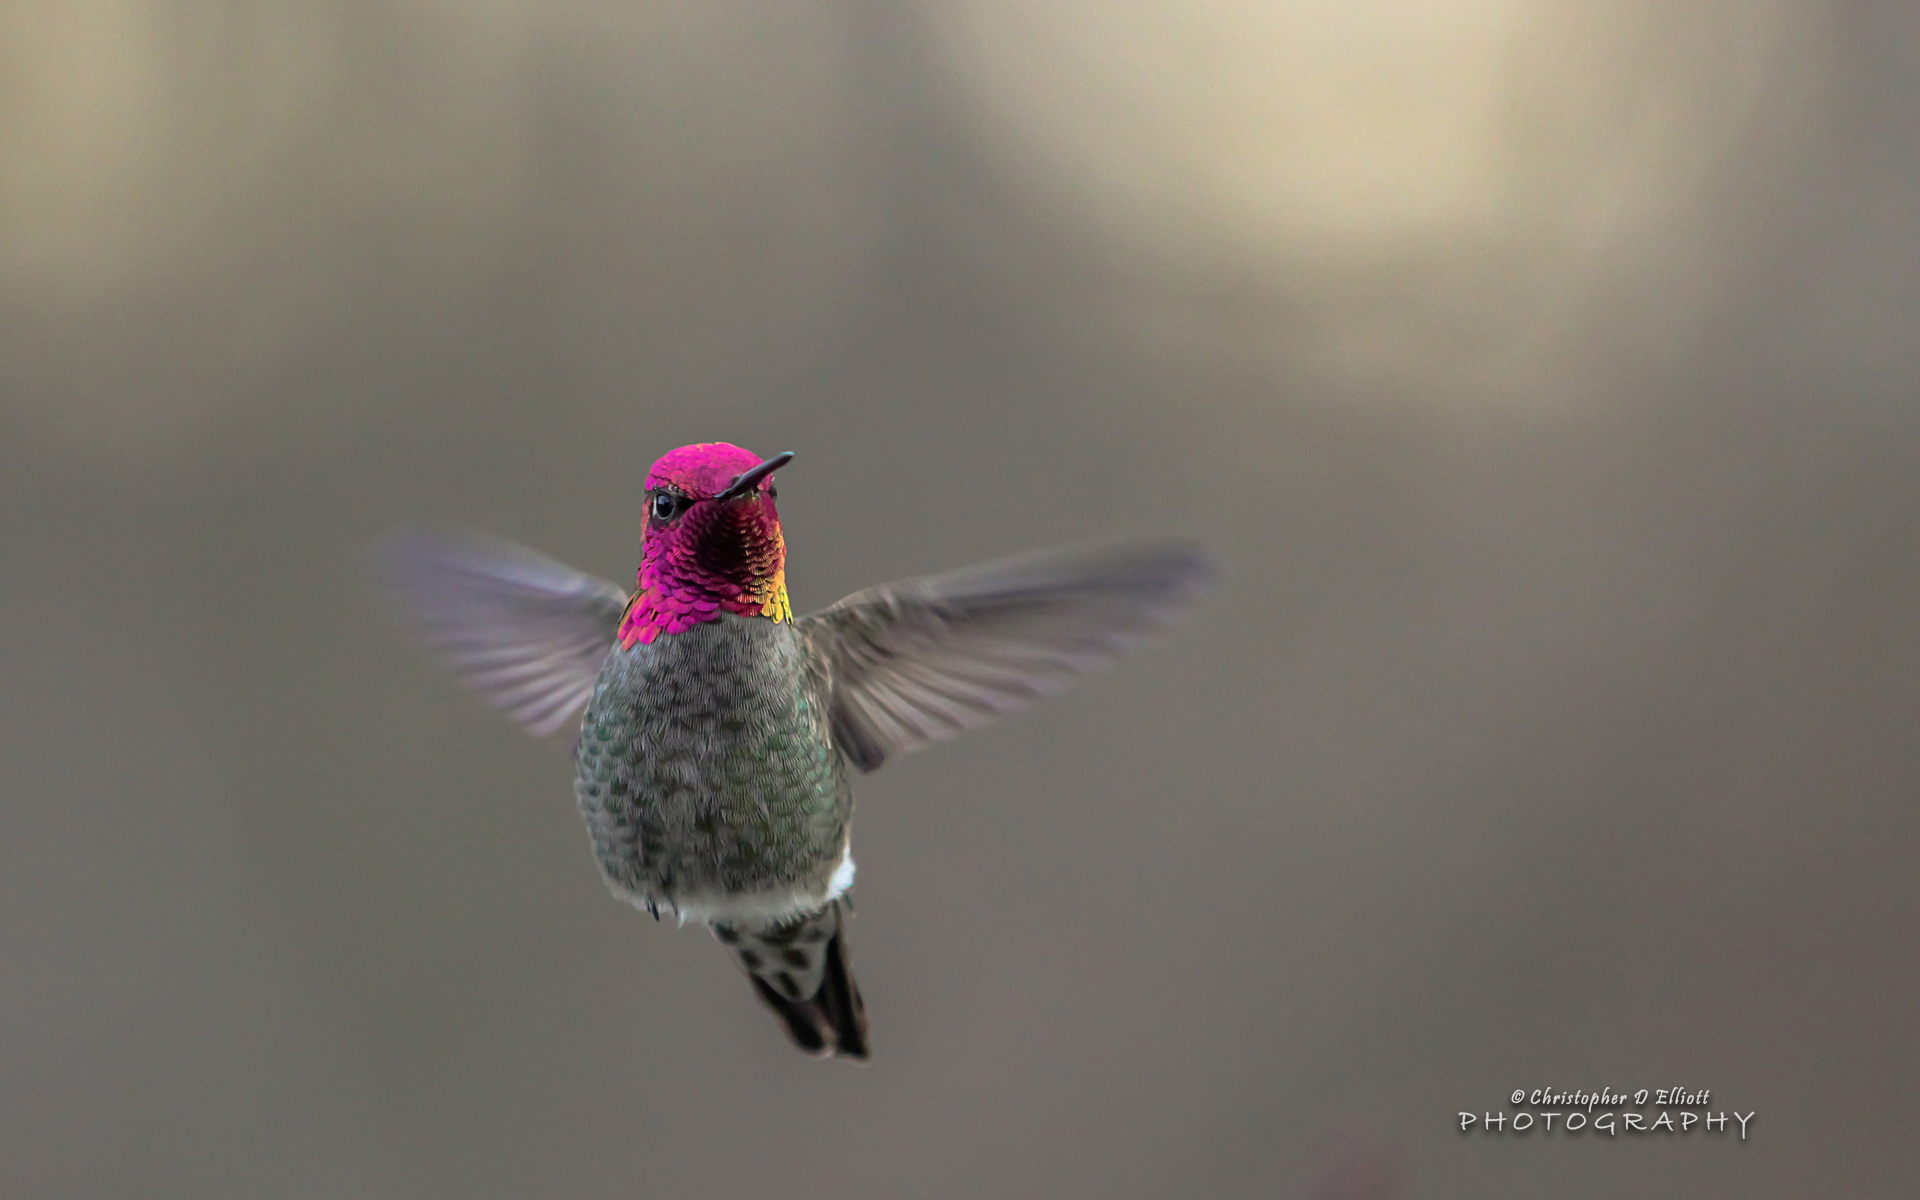 Flying Hummingbird 415.64 Kb